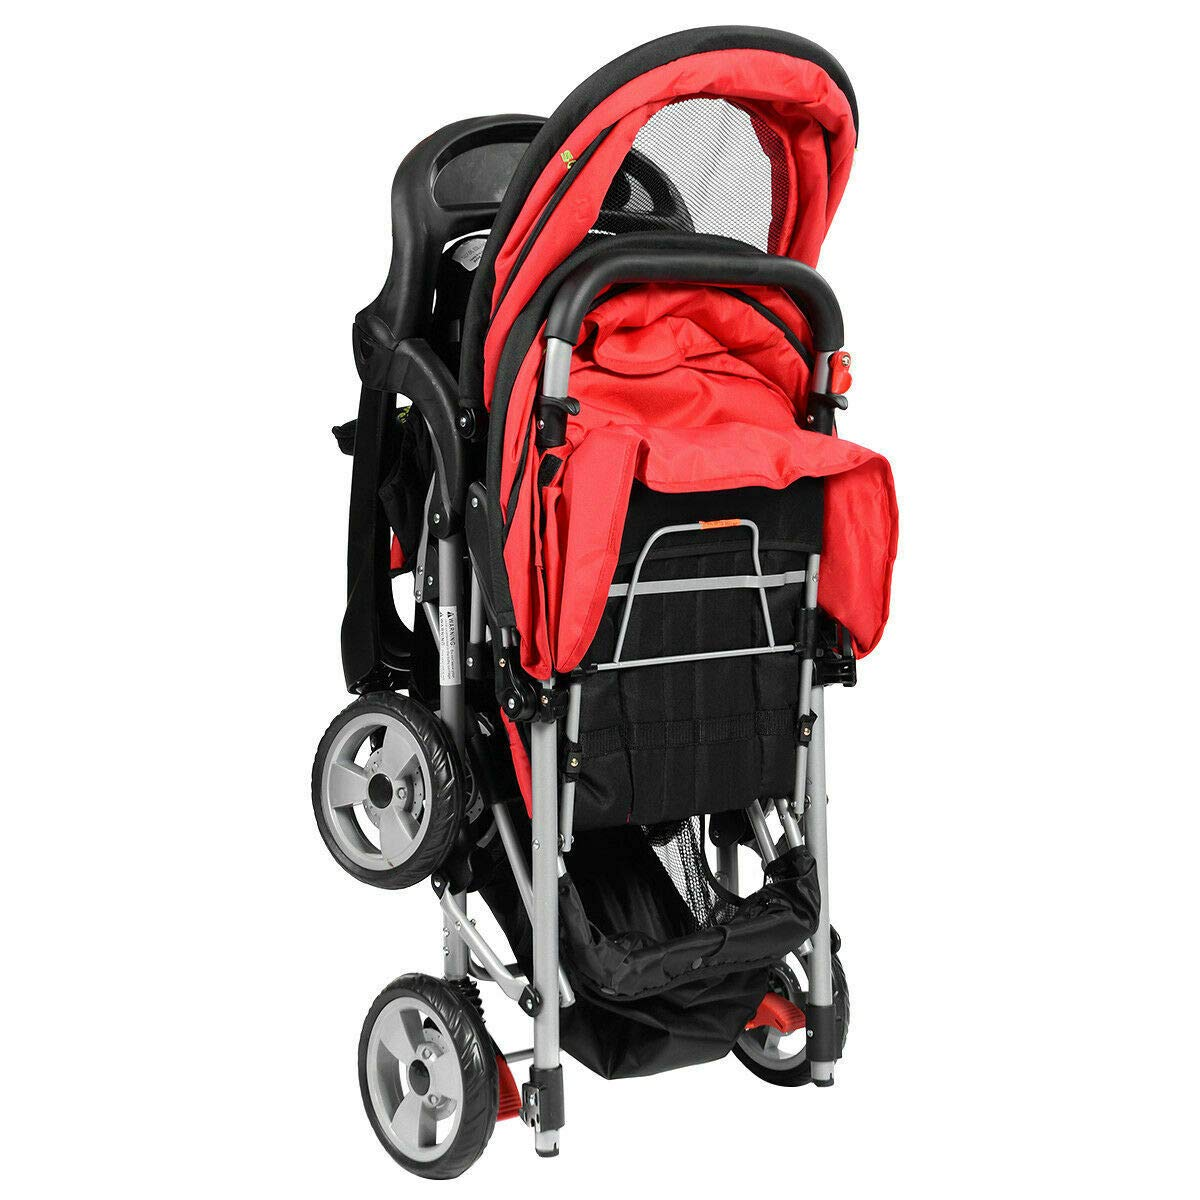 Cozinest Foldable Twin Baby Double Stroller Kids Jogger Travel Infant Pushchair Red by Cozinest (Image #8)